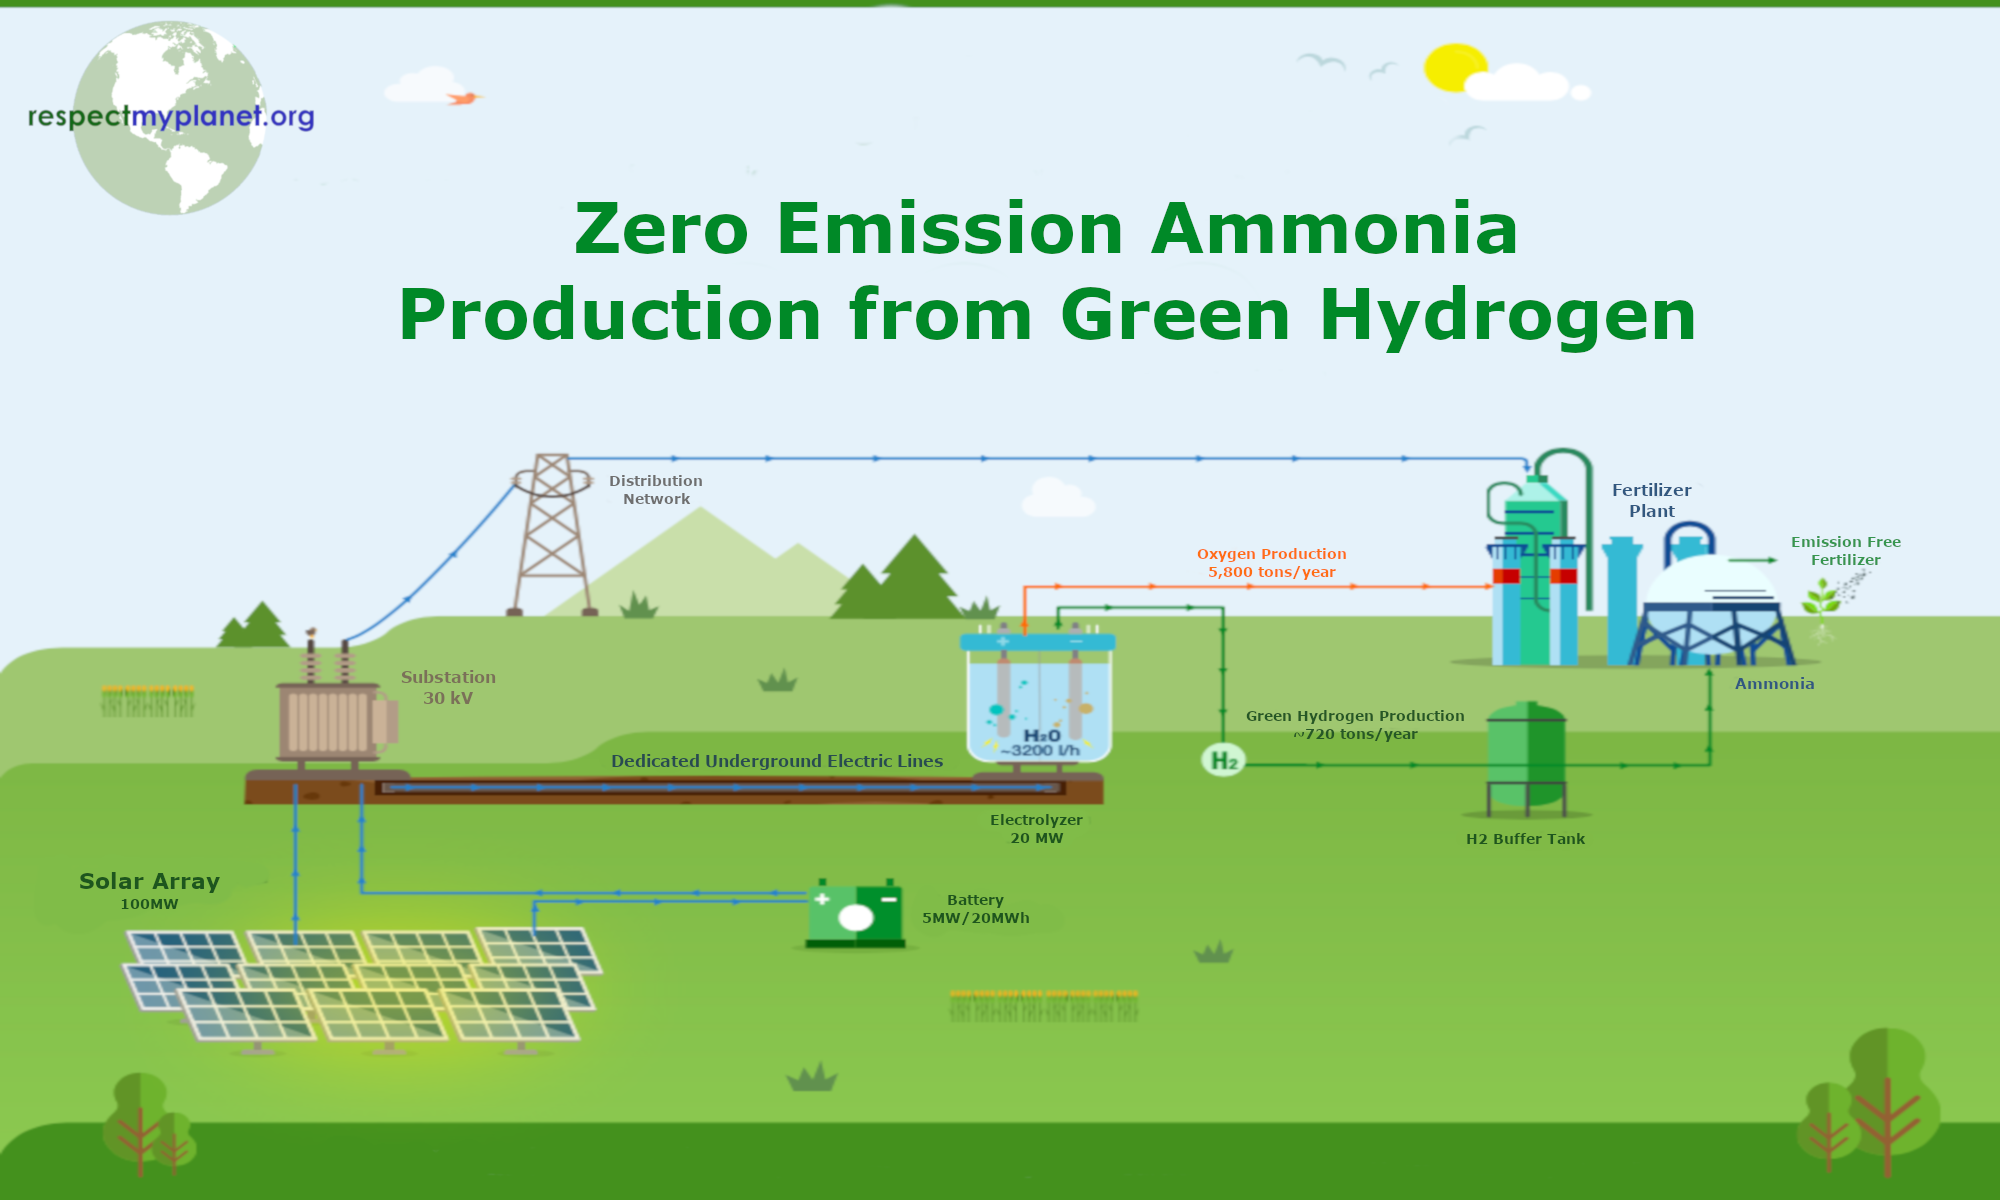 Zero Emission Ammonia Production from Green Hydrogen